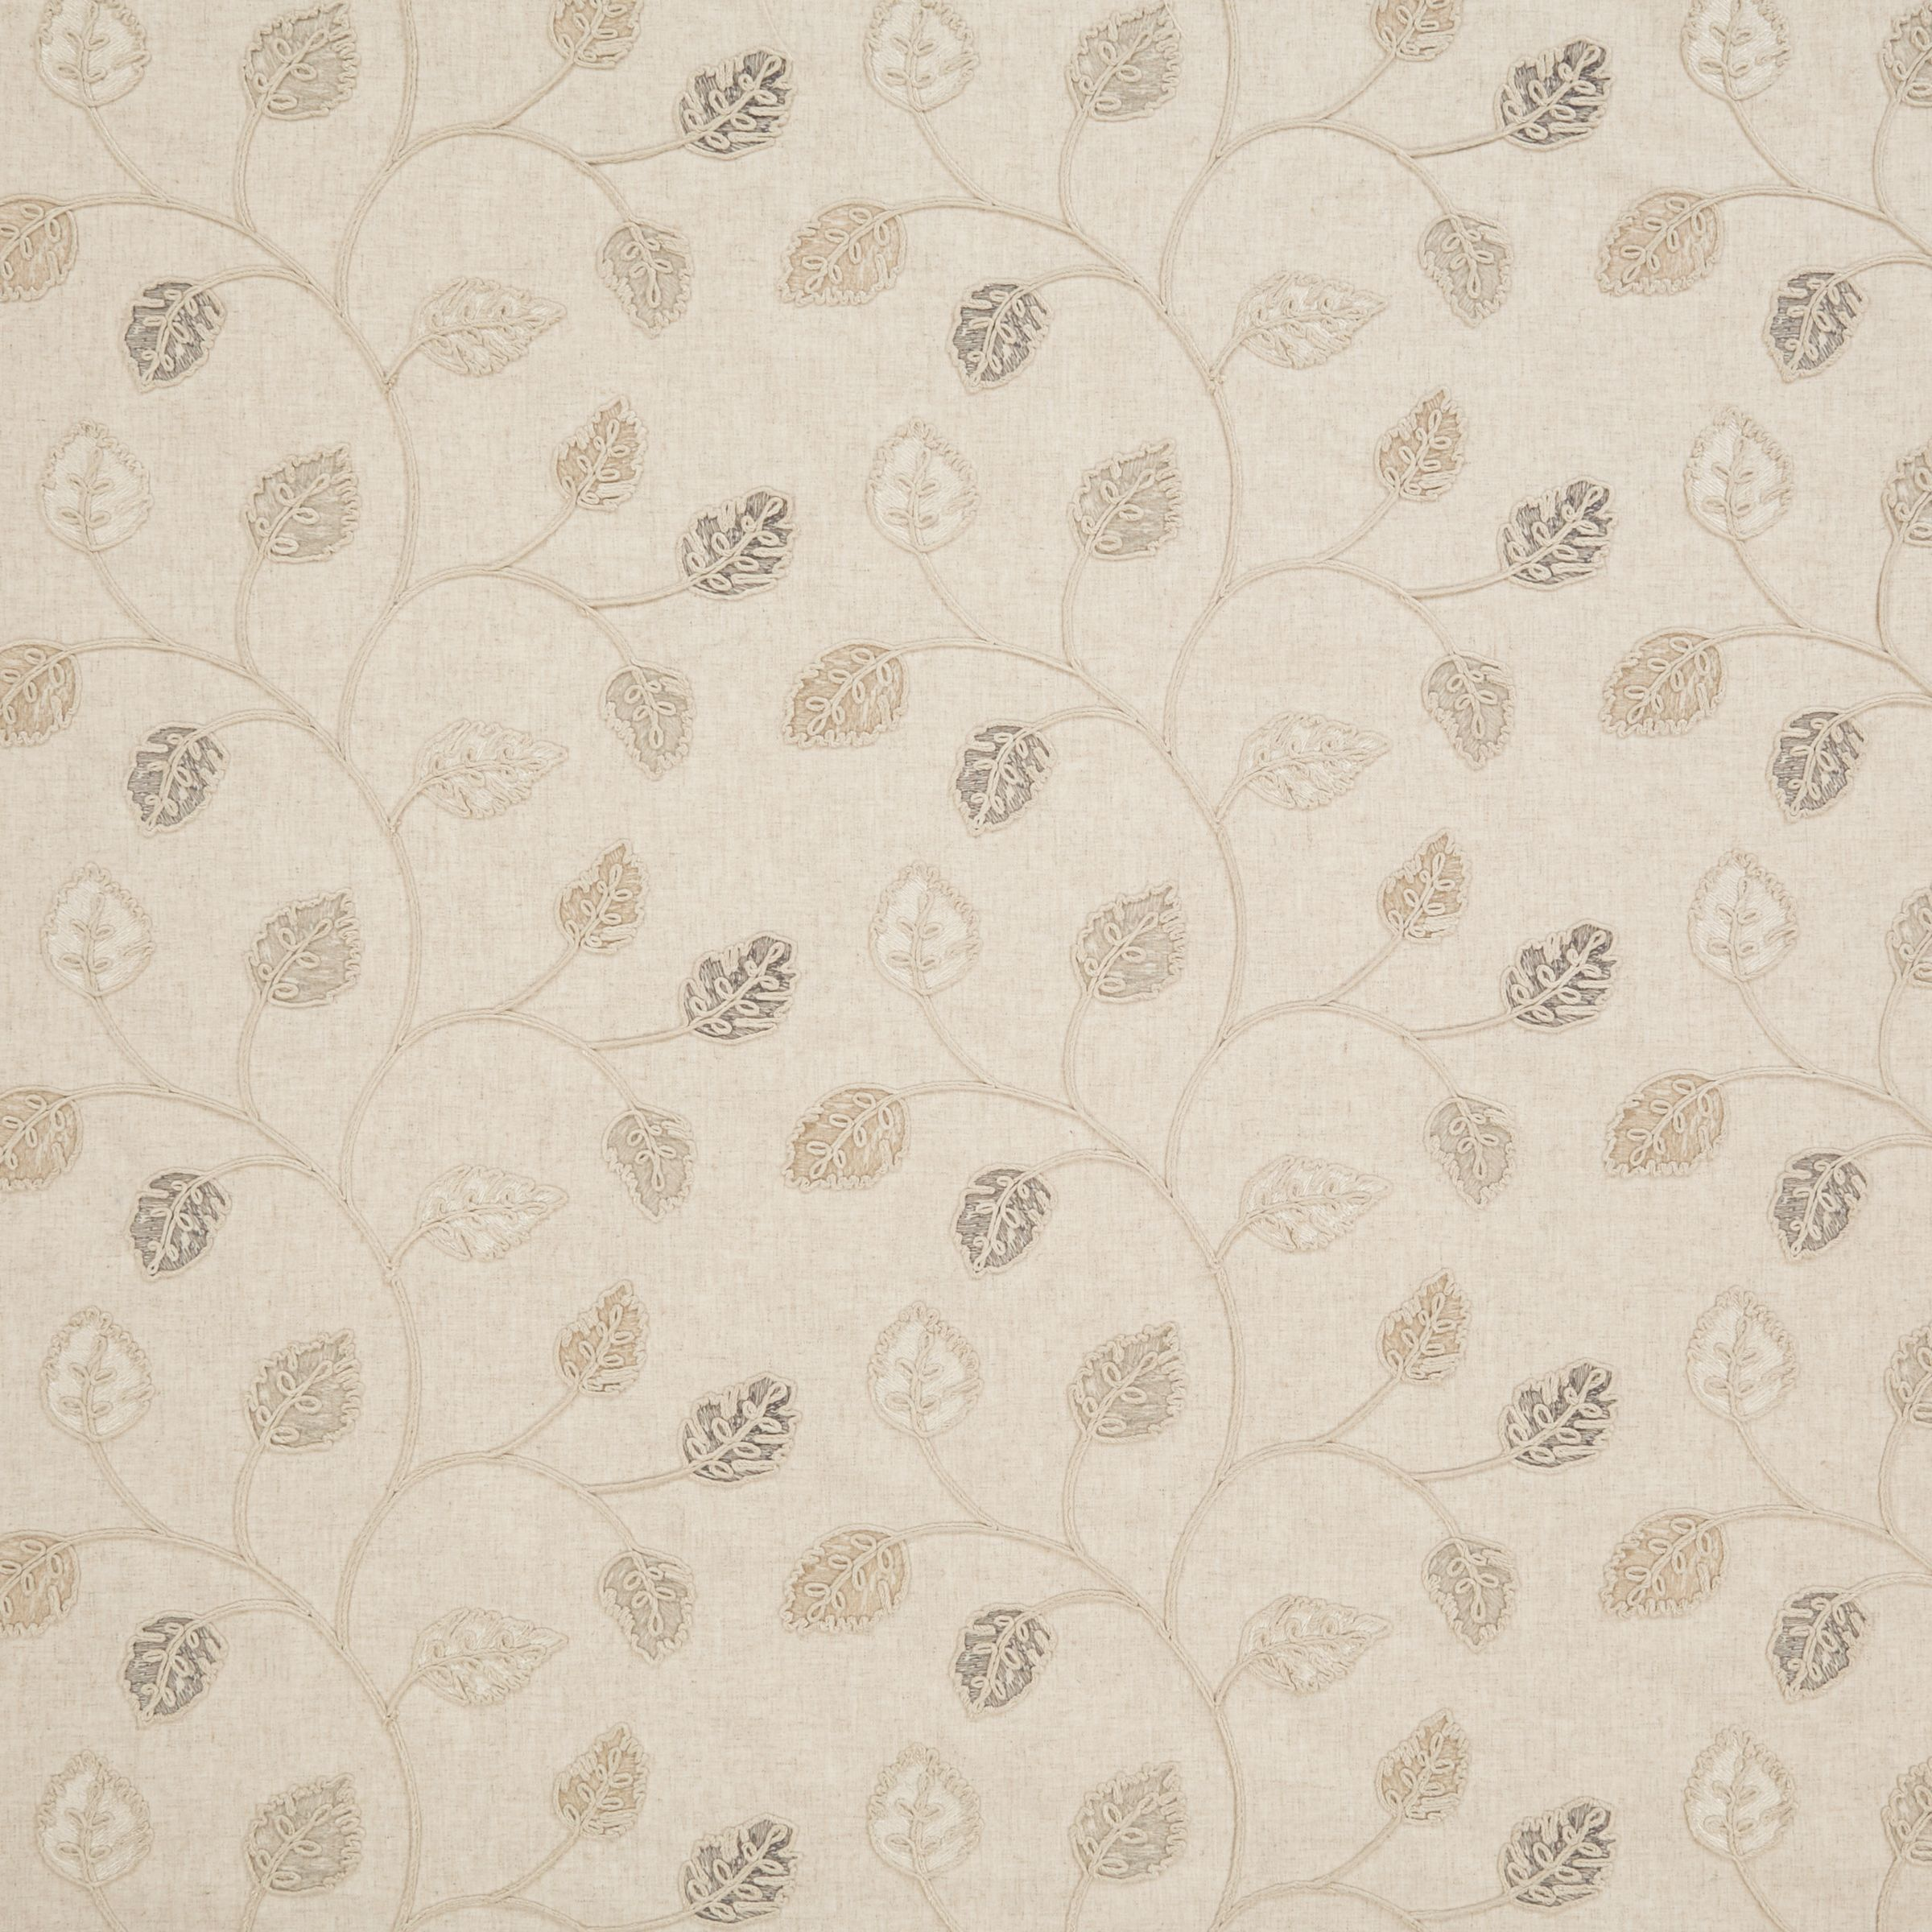 Voyage Voyage Marley Furnishing Fabric